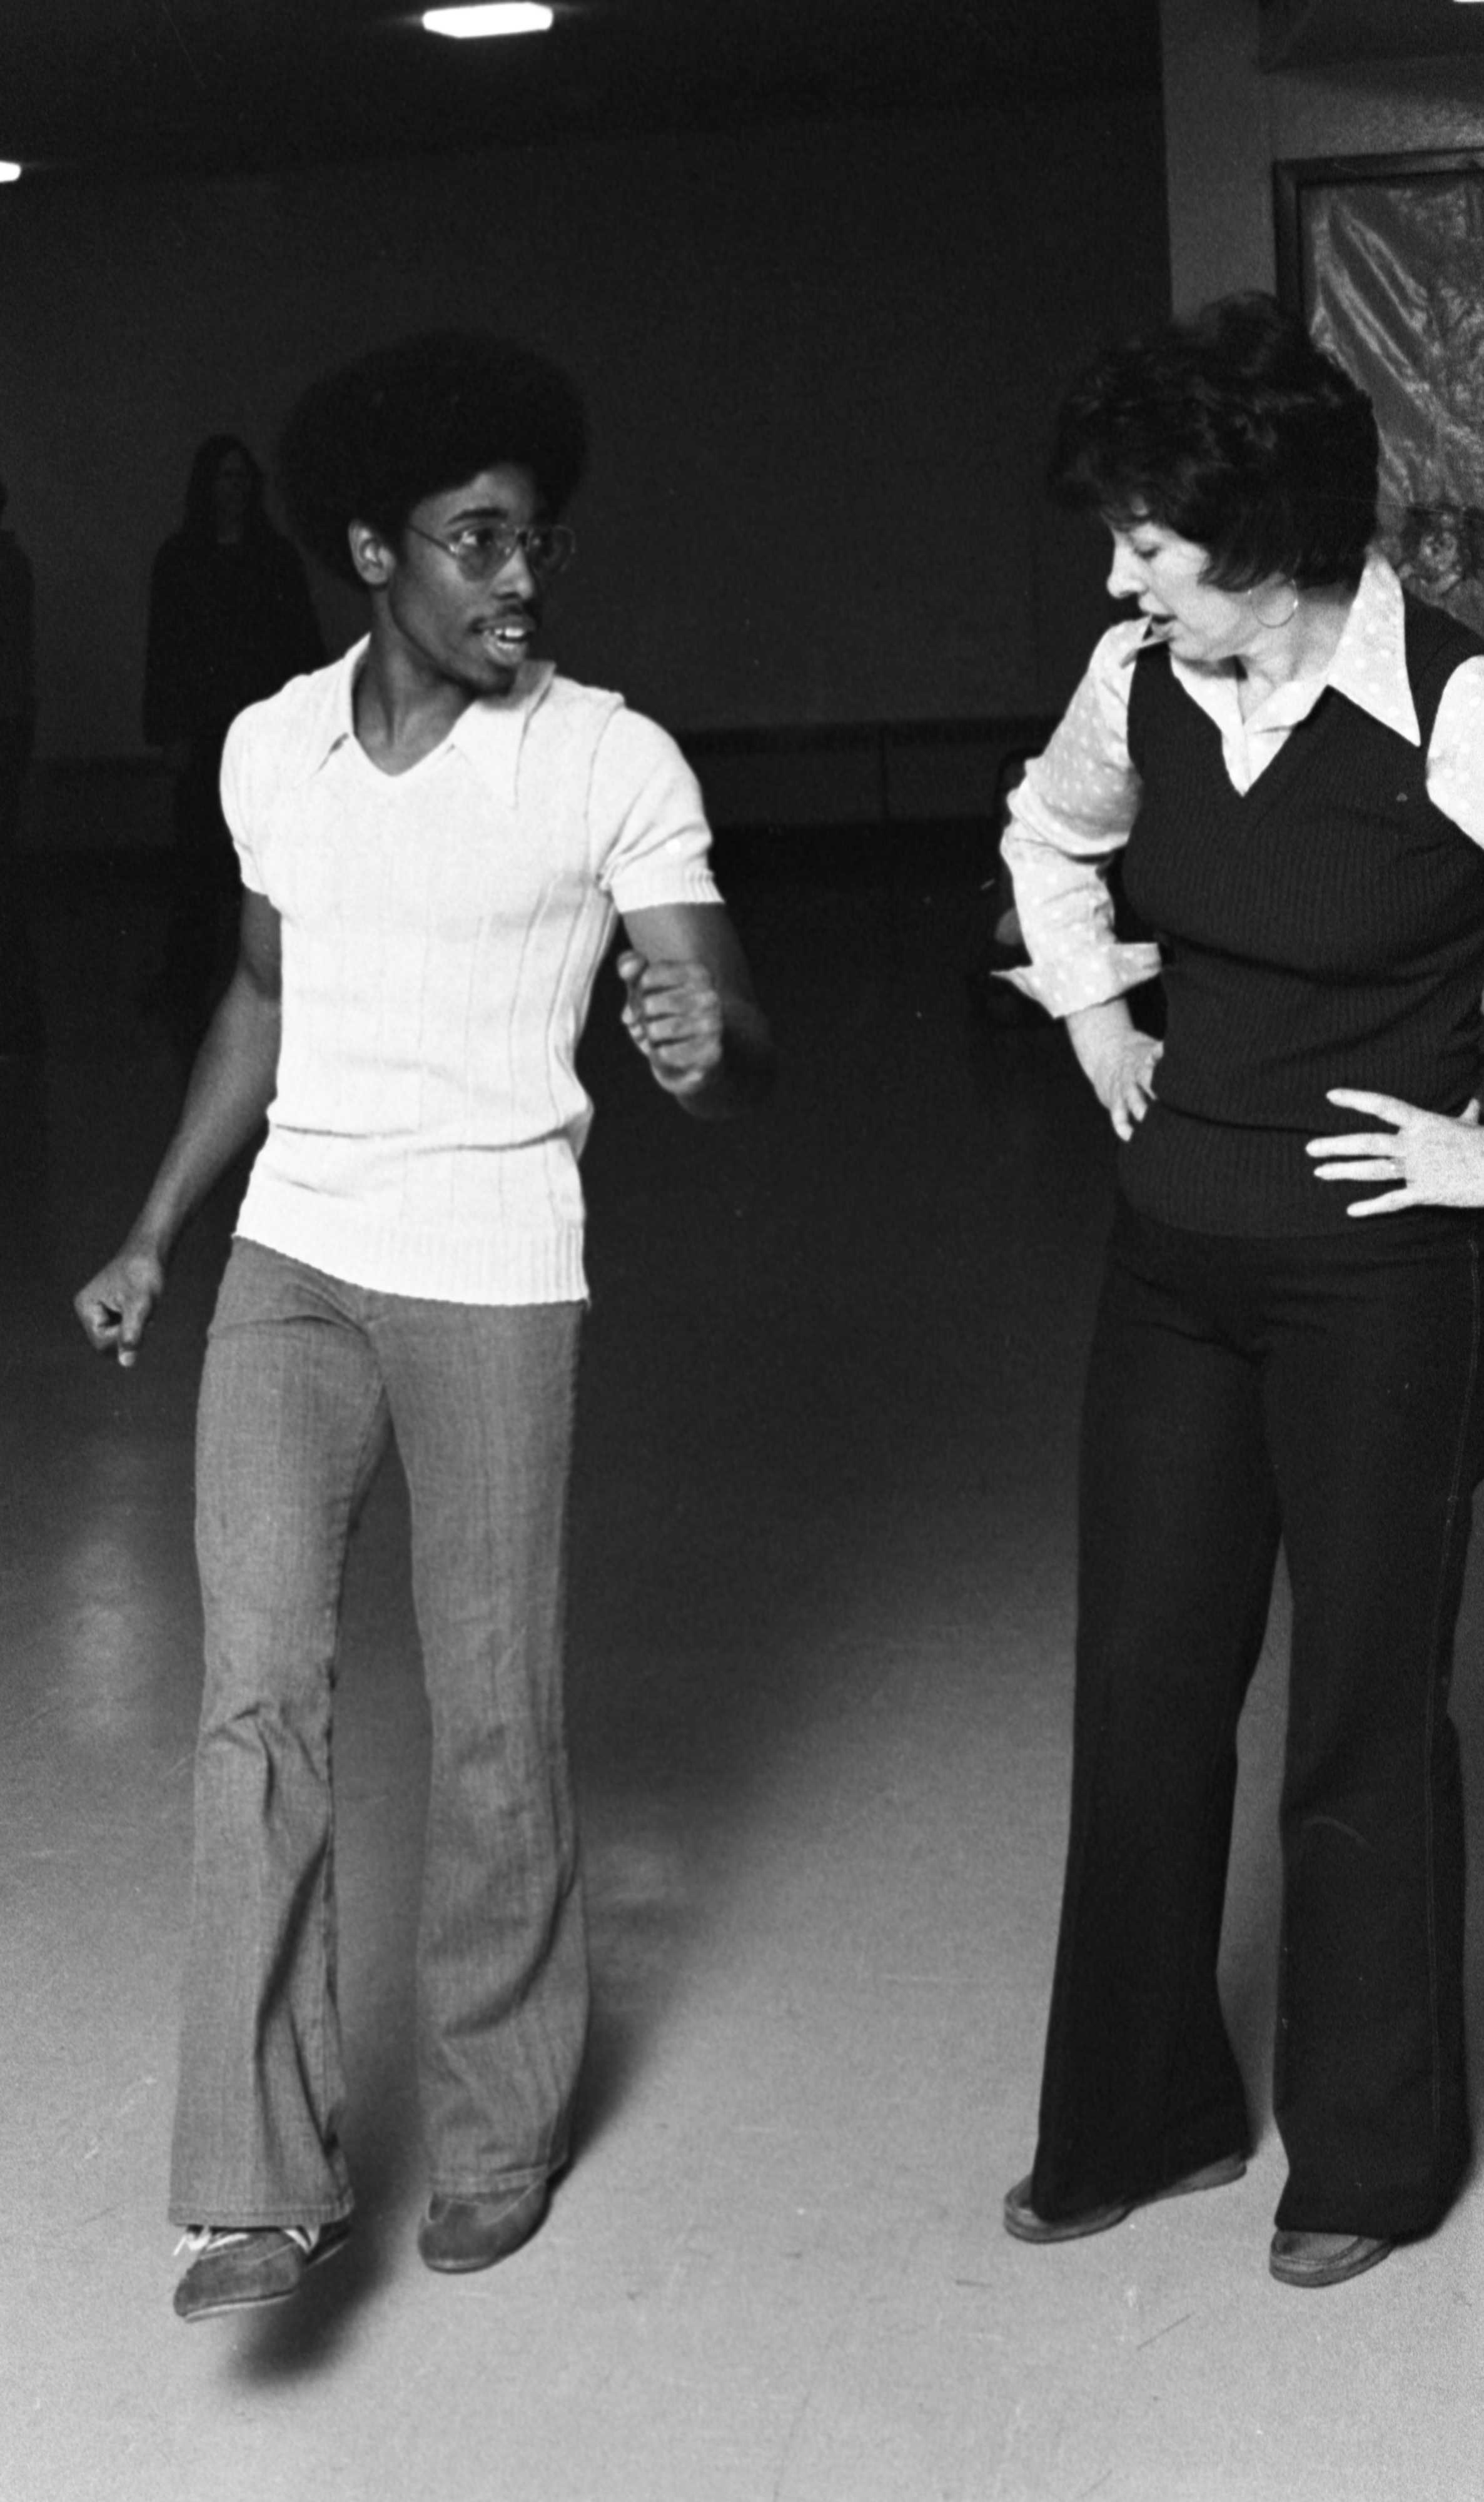 Dorian Deaver Demonstrates A Dance Move For A Student In His Disco Class At The Ann Arbor Y, November 1976 image